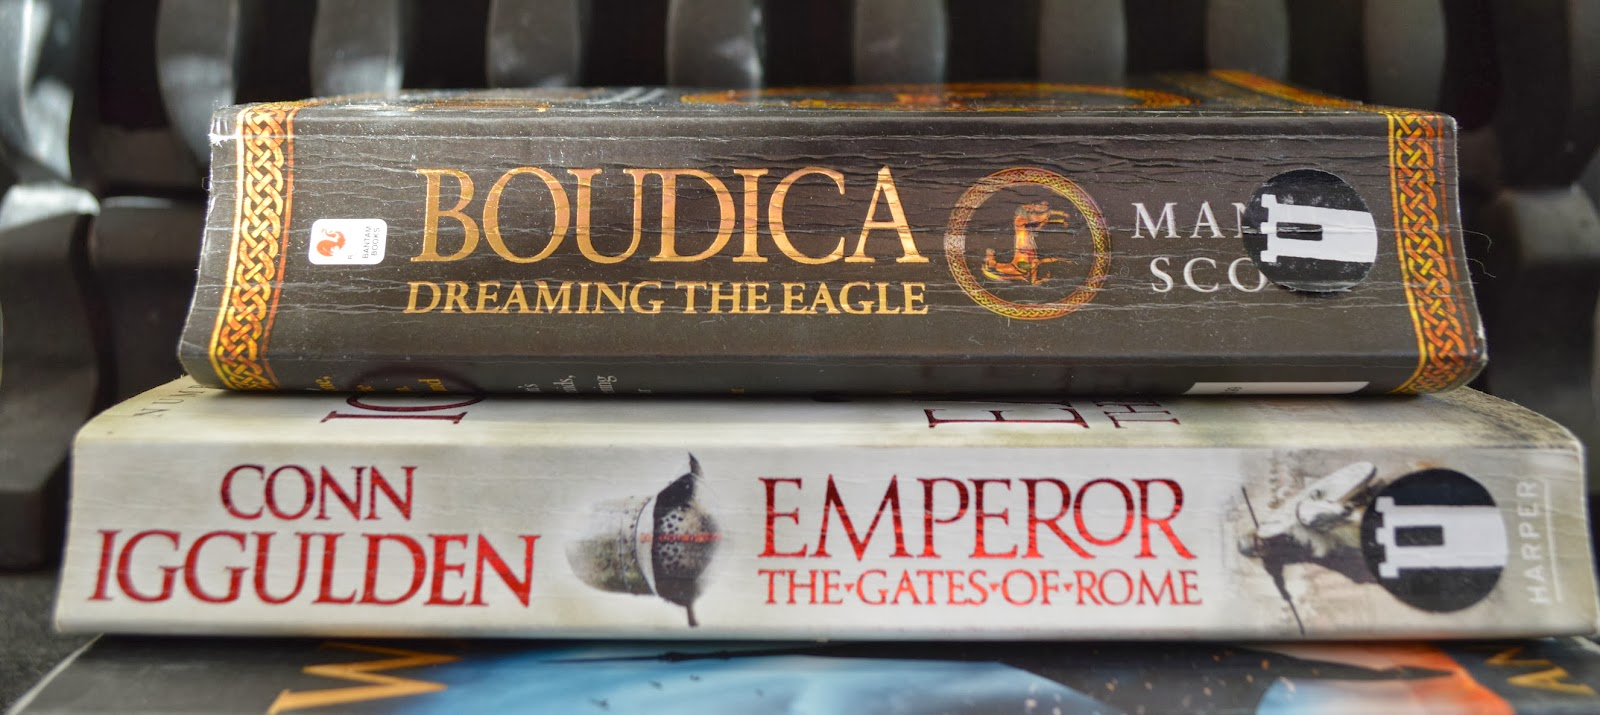 historical fiction, swords and sandals, novels, books, what to read if you like Game of Thrones, GoT, Boudica, Manda Scott, Holy Warrior, Angus Donald, Conn Iggulden, Gates of Rome, Book&acuppa, Book and a cuppa, book spine, book stack, front cover, paperback